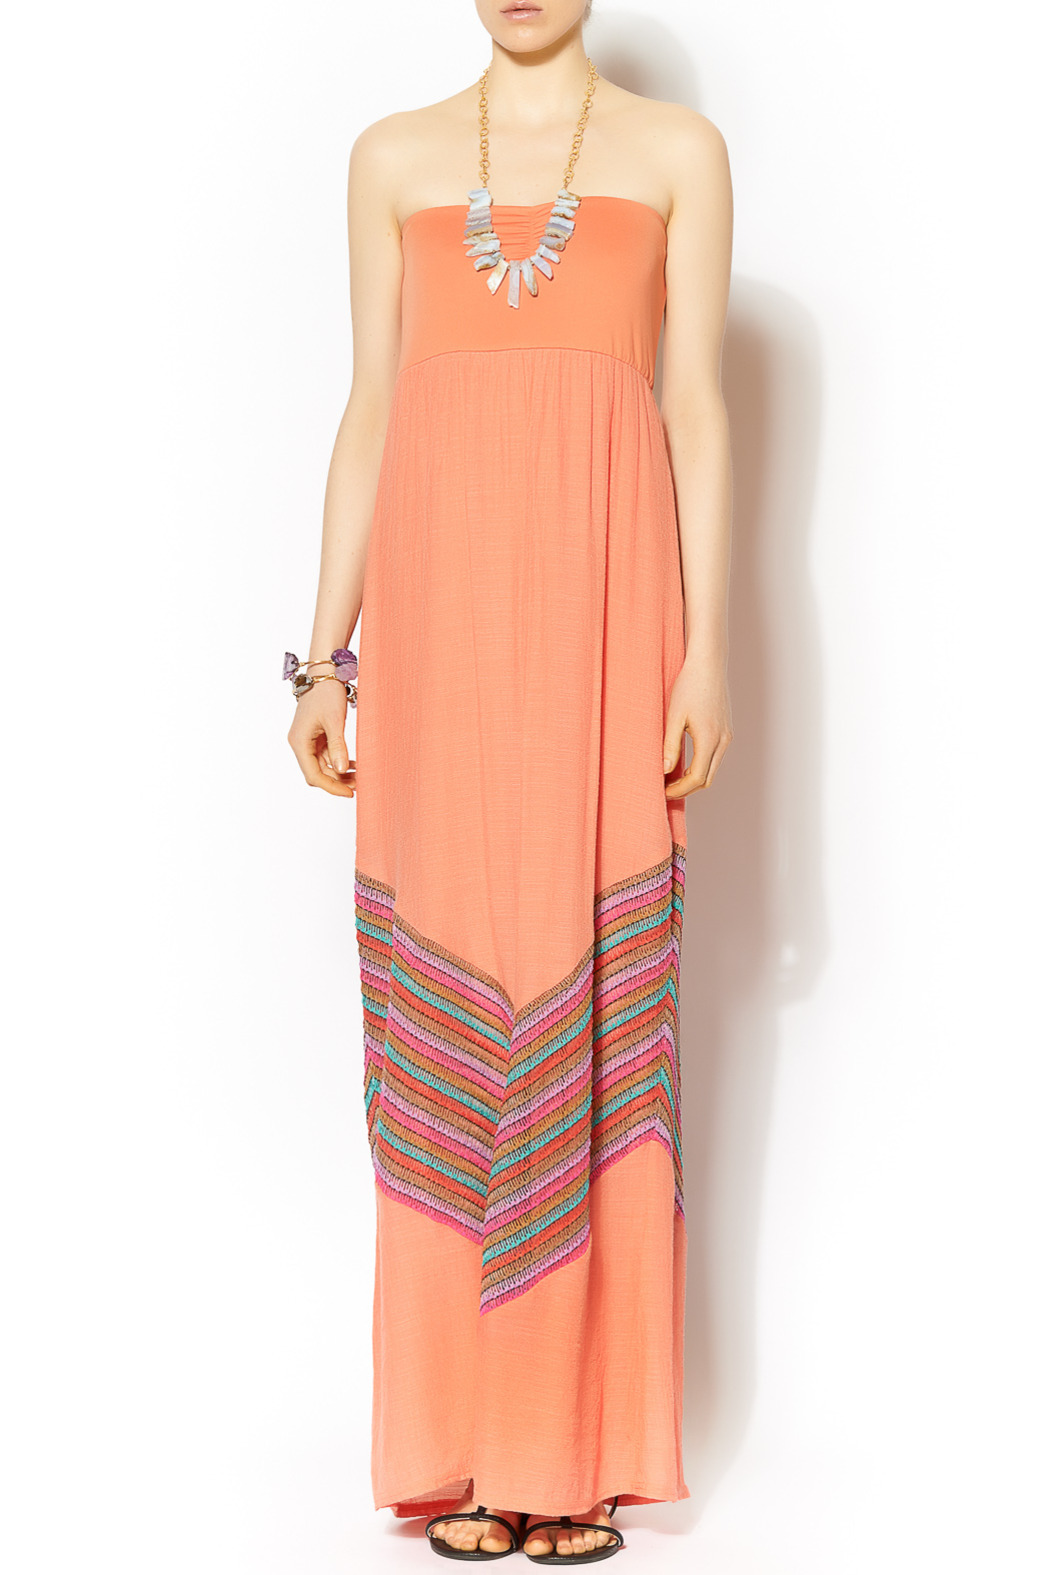 Missy Robertson Coral Chevron Detail Maxi - Front Cropped Image